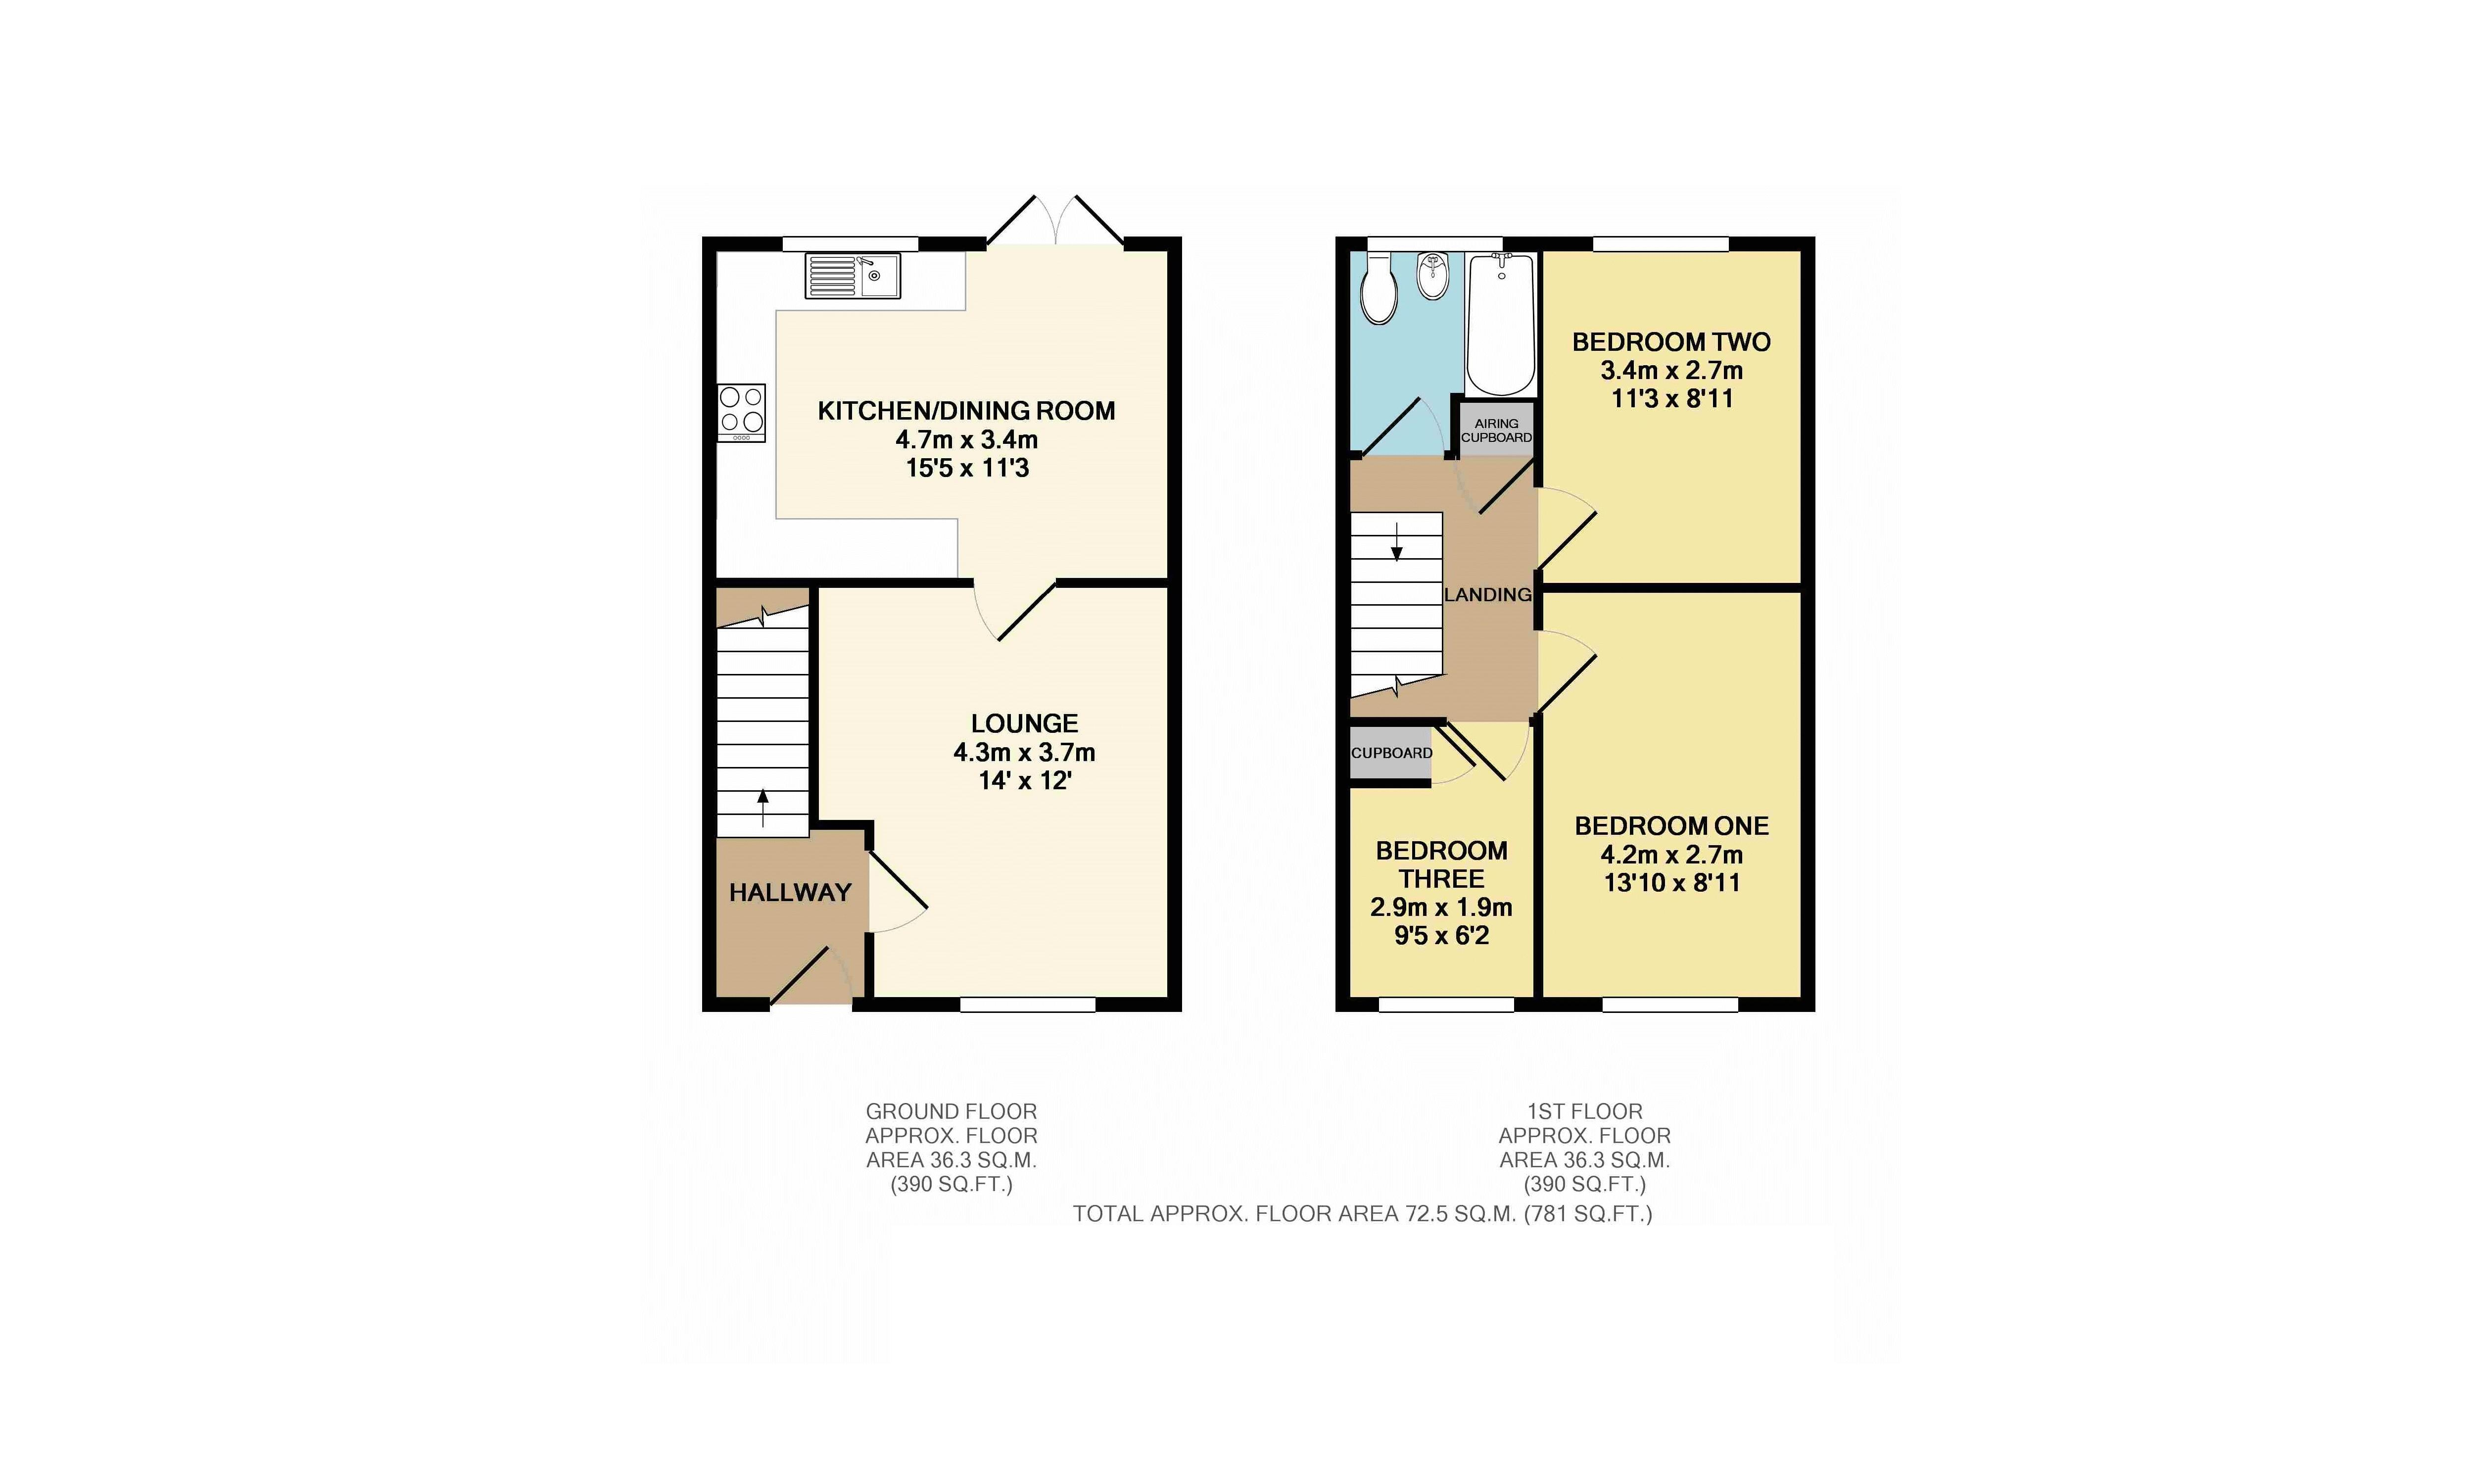 3 bedroom house for sale in linslade for How much is a bathroom worth on an appraisal